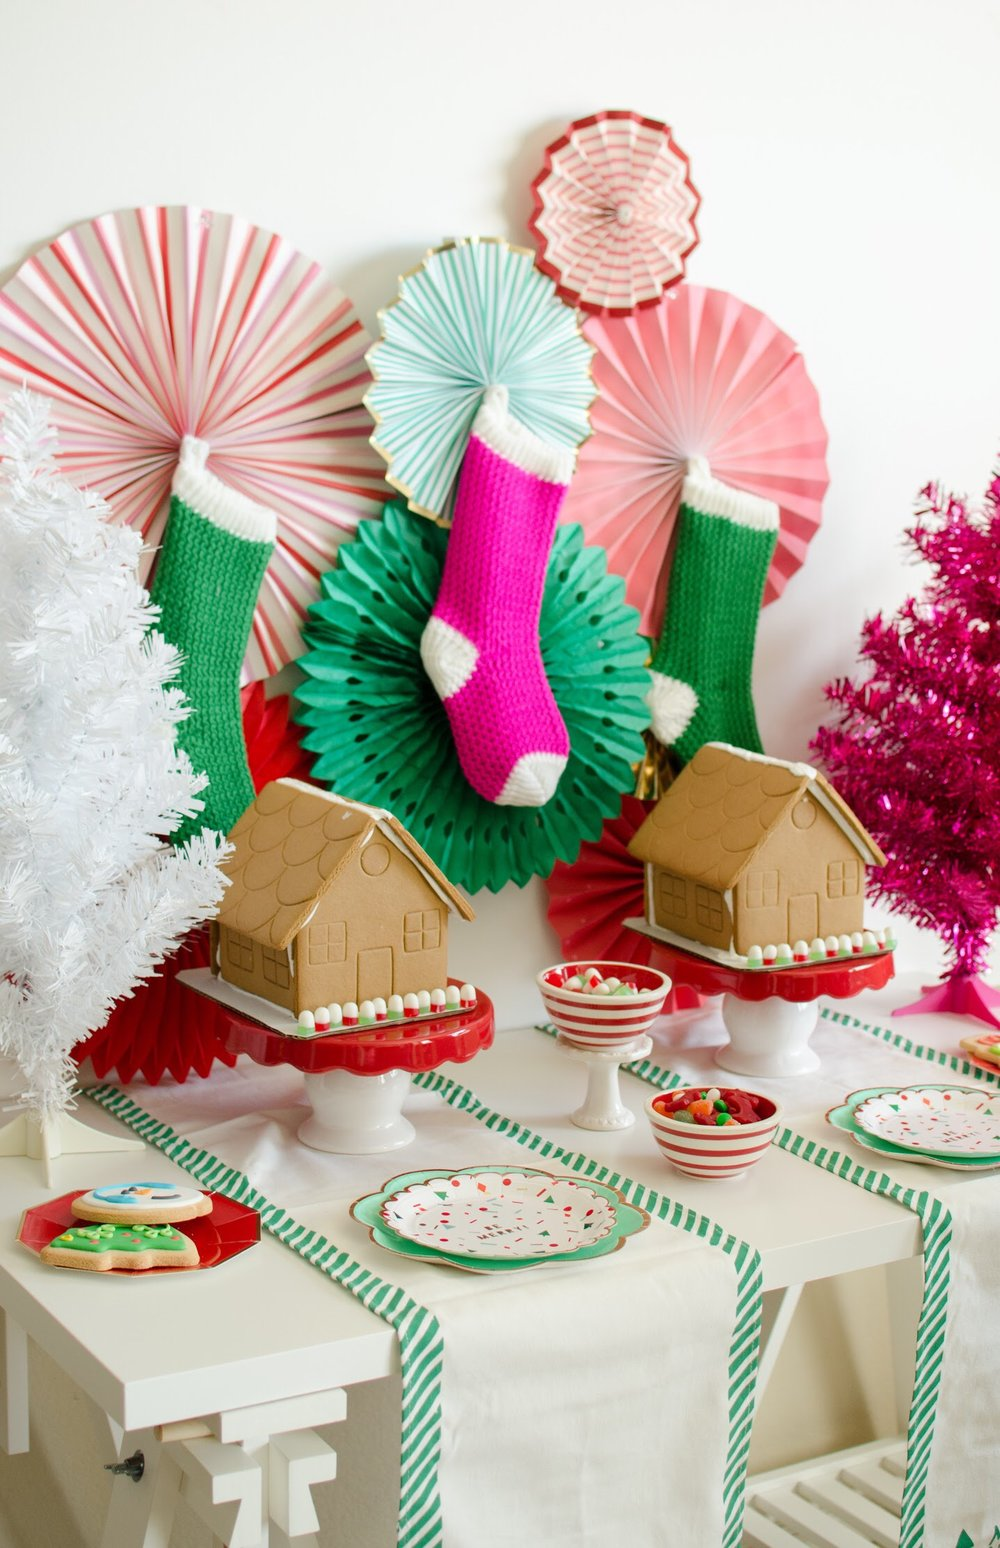 Party Planning Tip for a Gingerbread house decorating party: Place the candy for decorating into festive holiday bowls that can be reused for the entire holiday season. See the full decorating details and party set up design on Mint Event Design www.minteventdesign.com #gingerbreadhouse #holidayparty #holidays #partyideas #christmasparty #holidaypartyideas #kidsparty